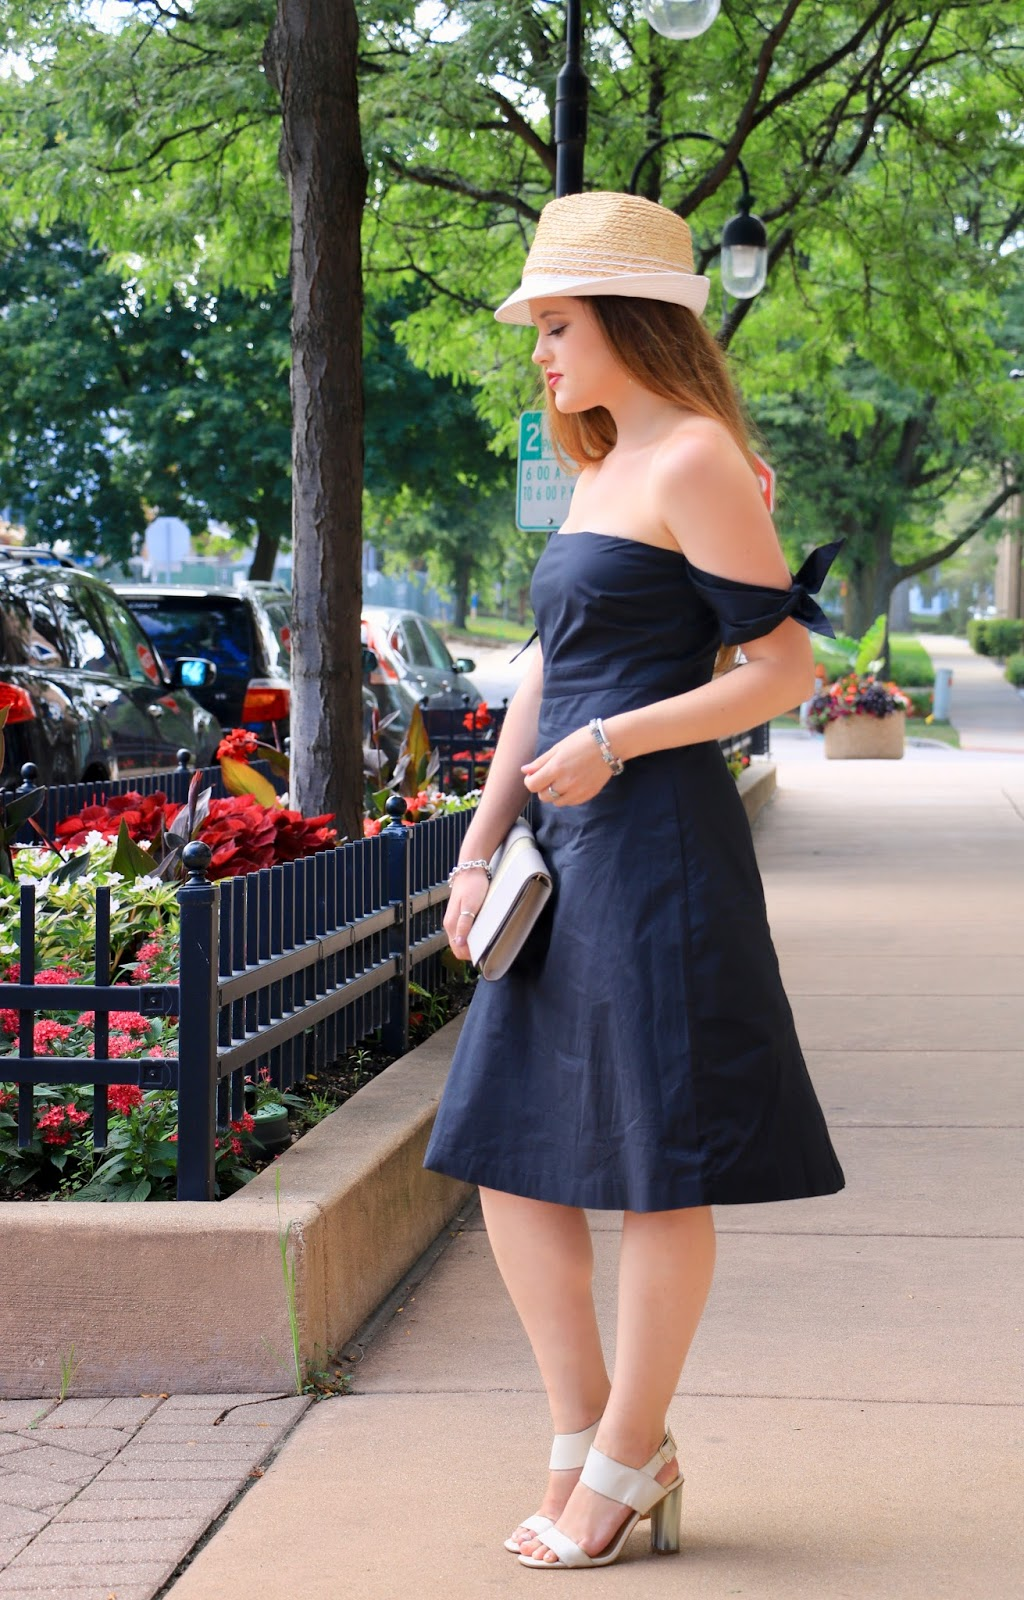 Fashion blogger Kathleen Harper of Kat's Fashion Fix wearing an off-the-shoulder black dress